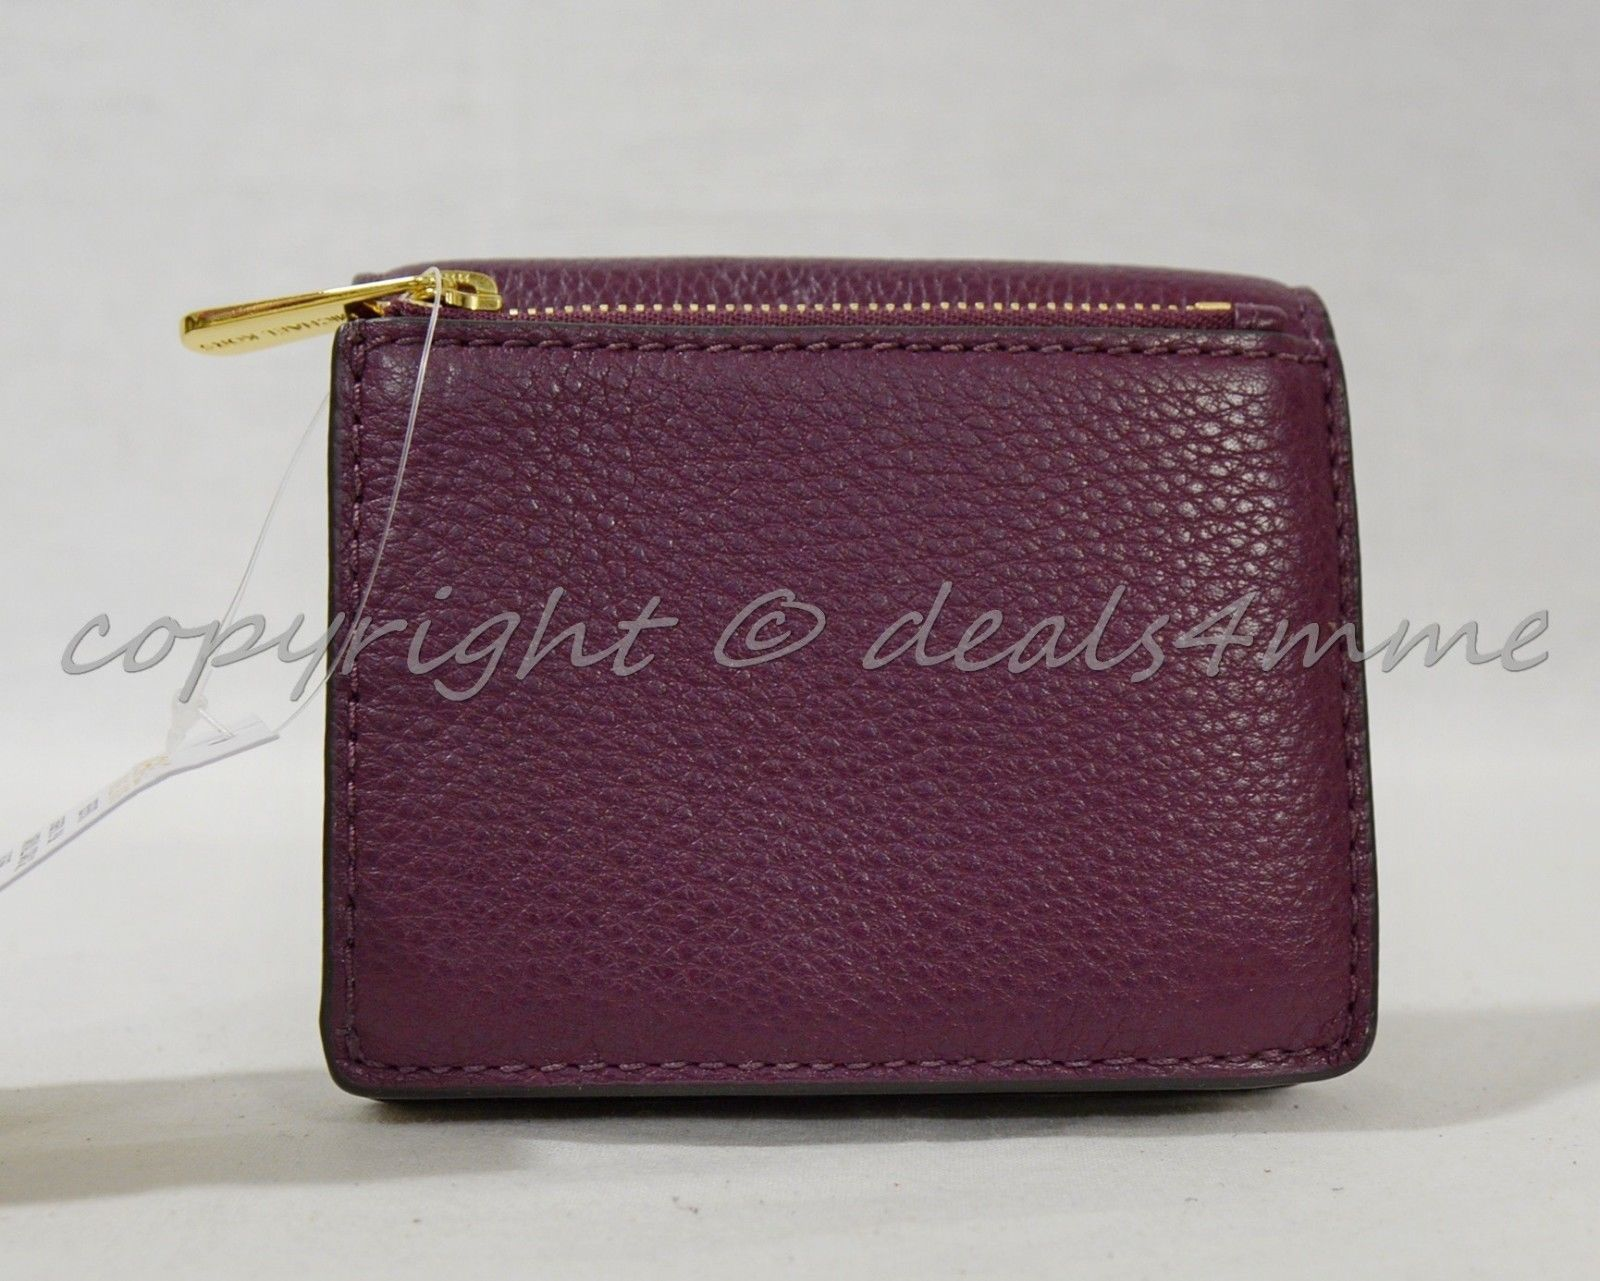 NWT Michael Kors Bedford Carryall Card Case in Plum Pebbled Leather